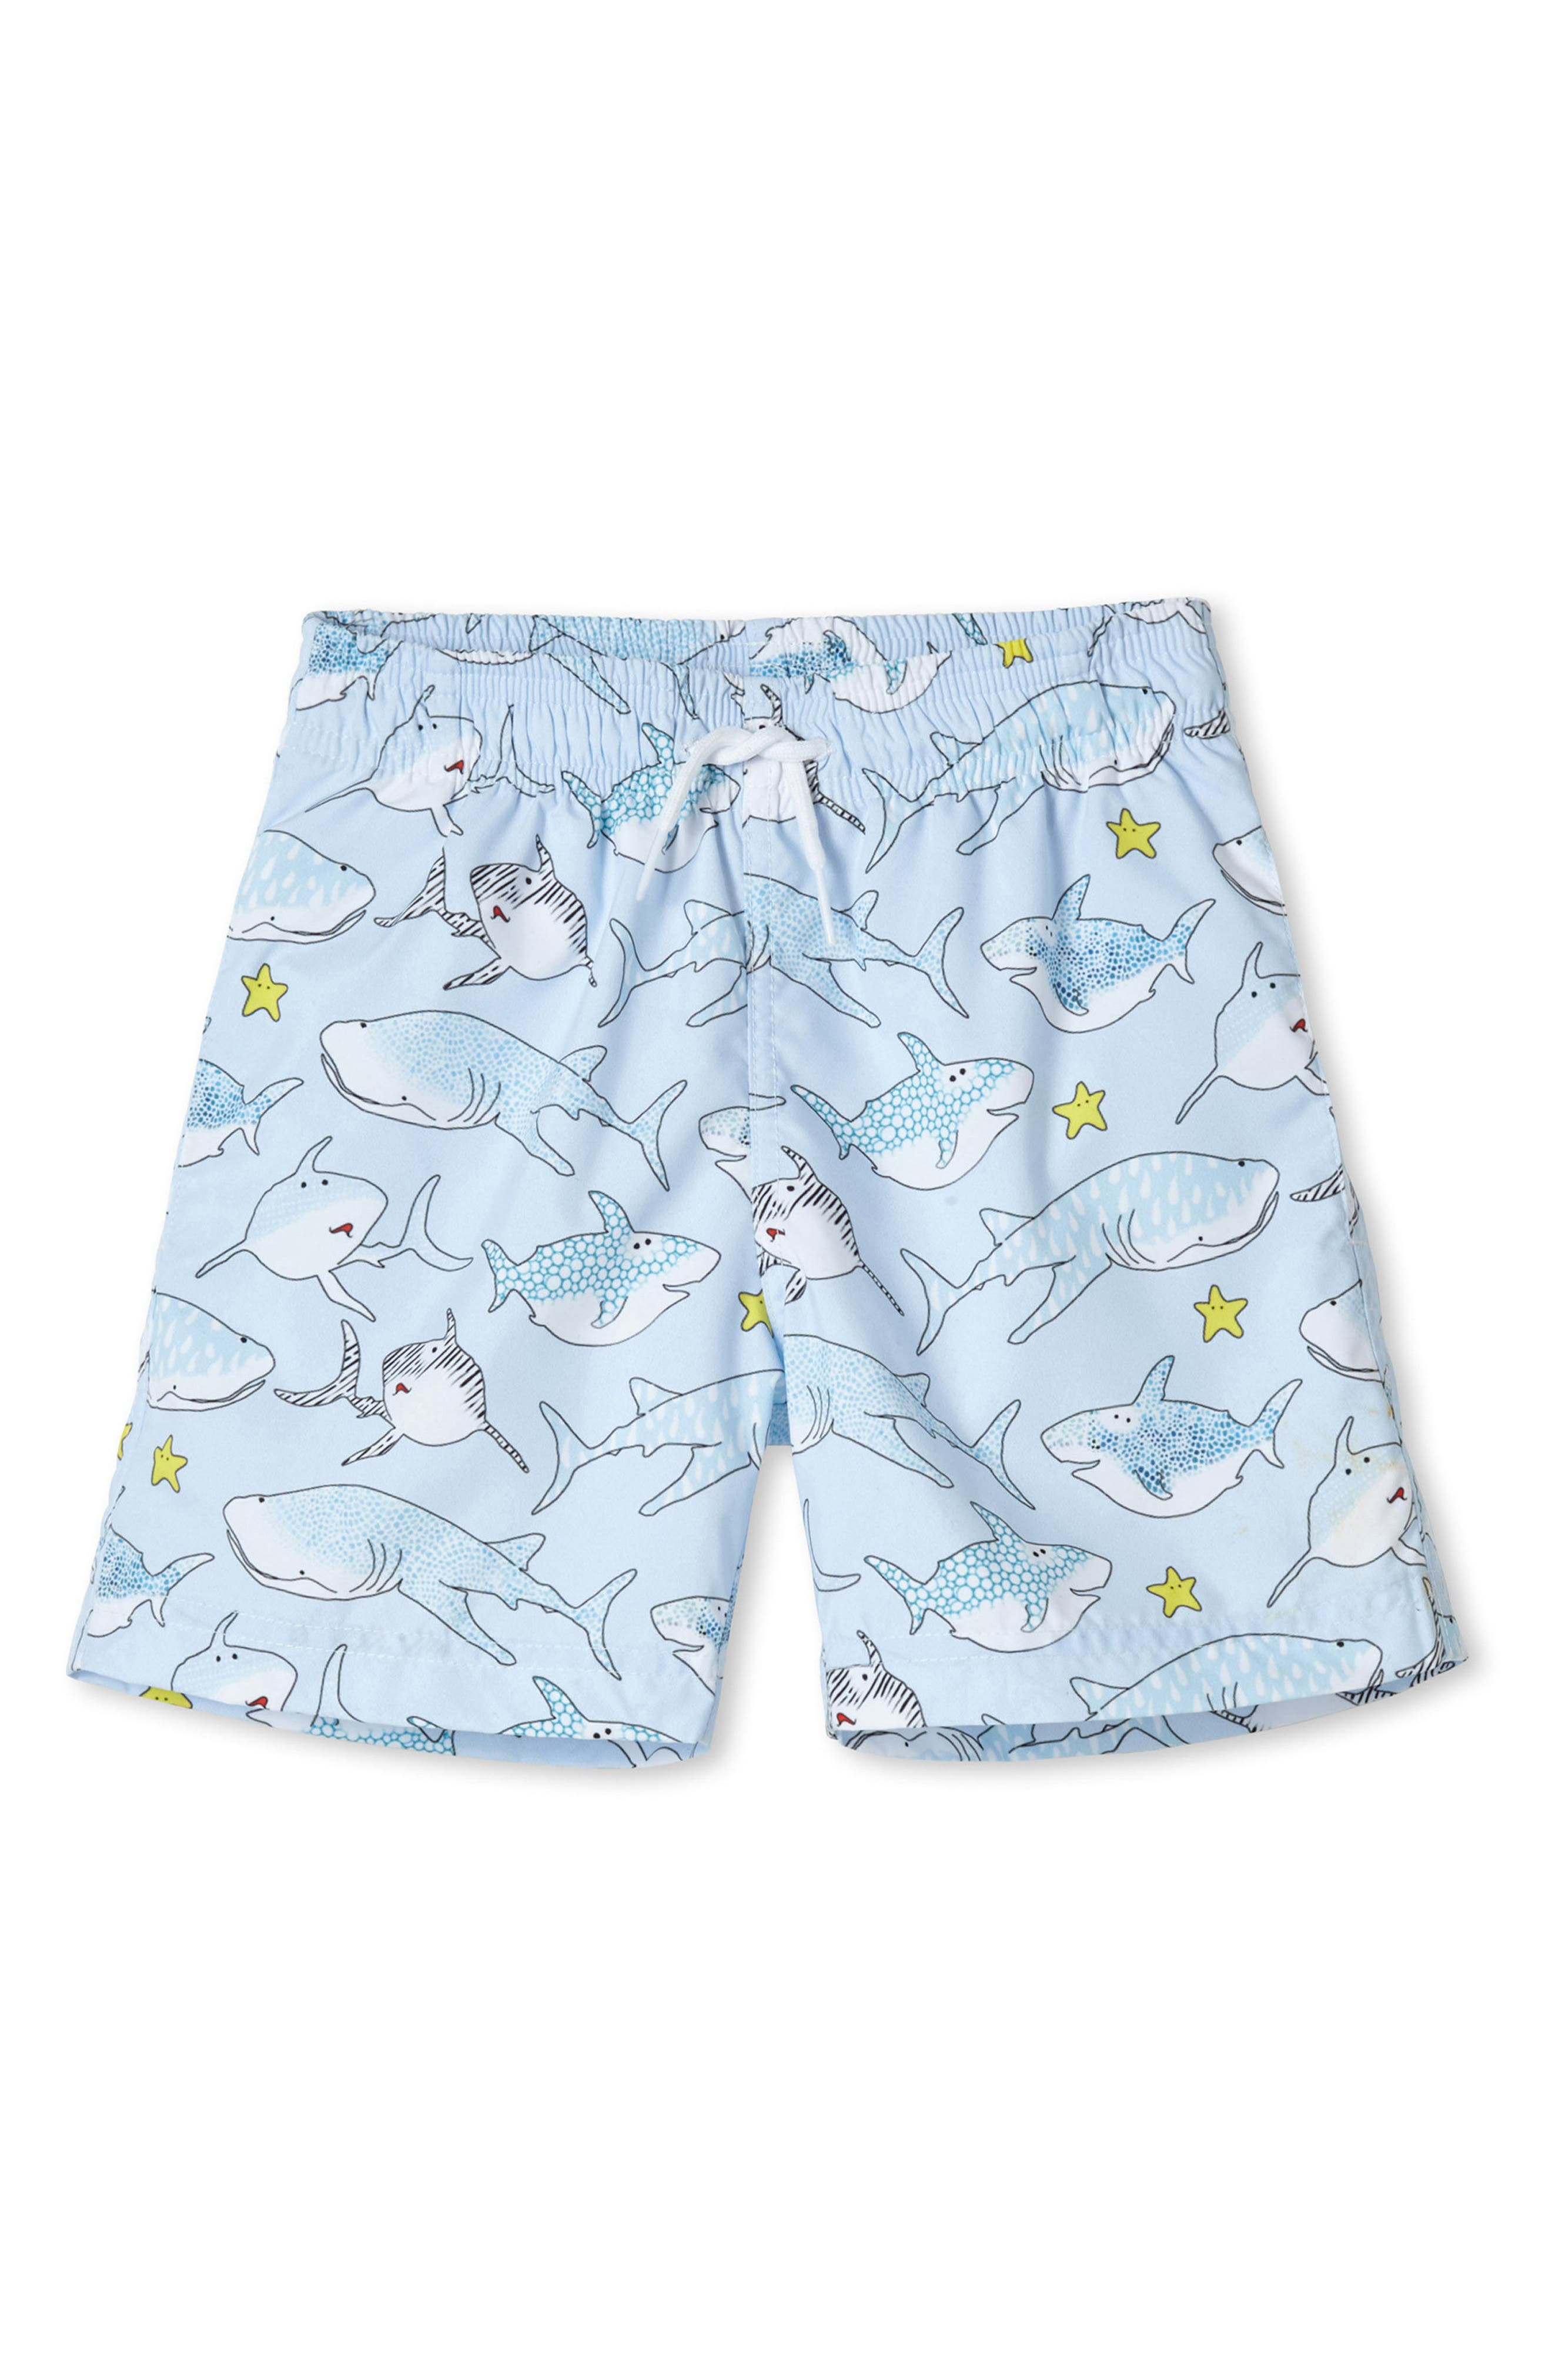 Main Image - Stella Cove Blue Shark Swim Trunks (Big Boys)